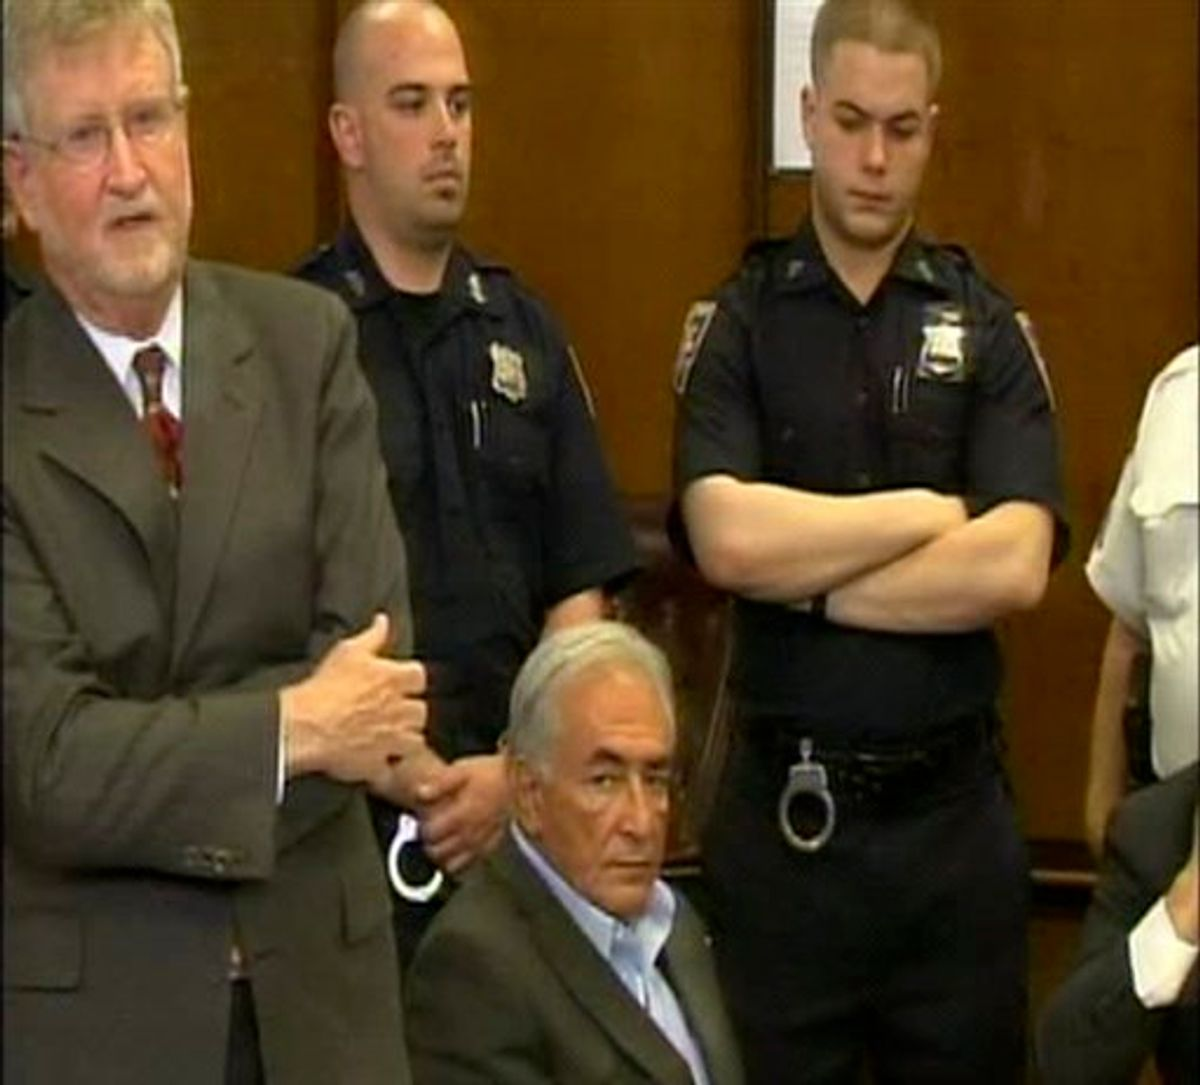 This frame grab taken from pool video shows former IMF leader Dominique Strauss-Kahn, center, seated, as he appears at a court hearing in the Manhattan borough of New York, Thursday May 19, 201, surrounded by his lawyer William Taylor, left, and unidentified police officers. Strauss-Kahn made a new bid to get released from jail while he awaits trial on charges that he sexually abused a hotel maid. A prosecutor began the hearing by announcing that a grand jury had found enough evidence for an indictment, a procedural step that elevates the seriousness of the charge. (AP Photo/NBC, Pool) (AP)